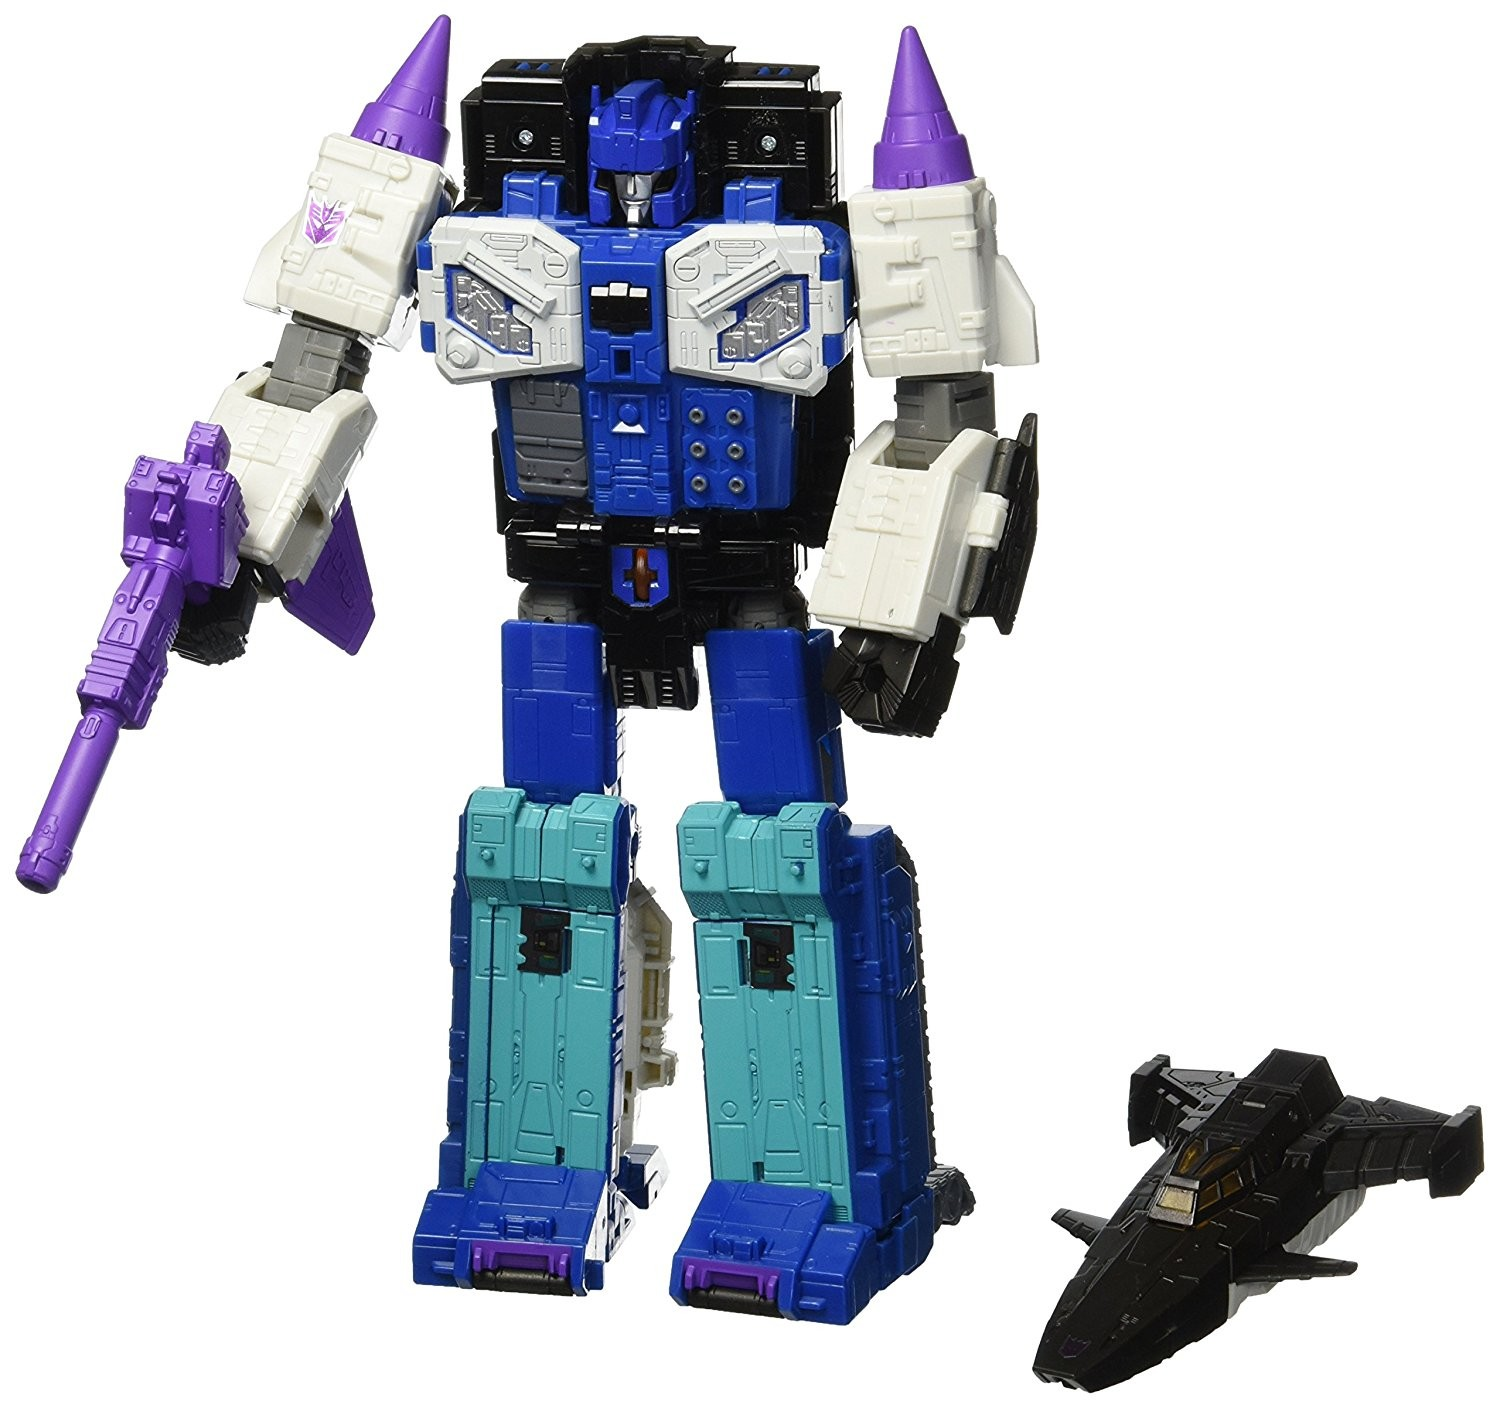 Transformers News: Titans Return Overlord as Amazon Deal of the day for $34.83